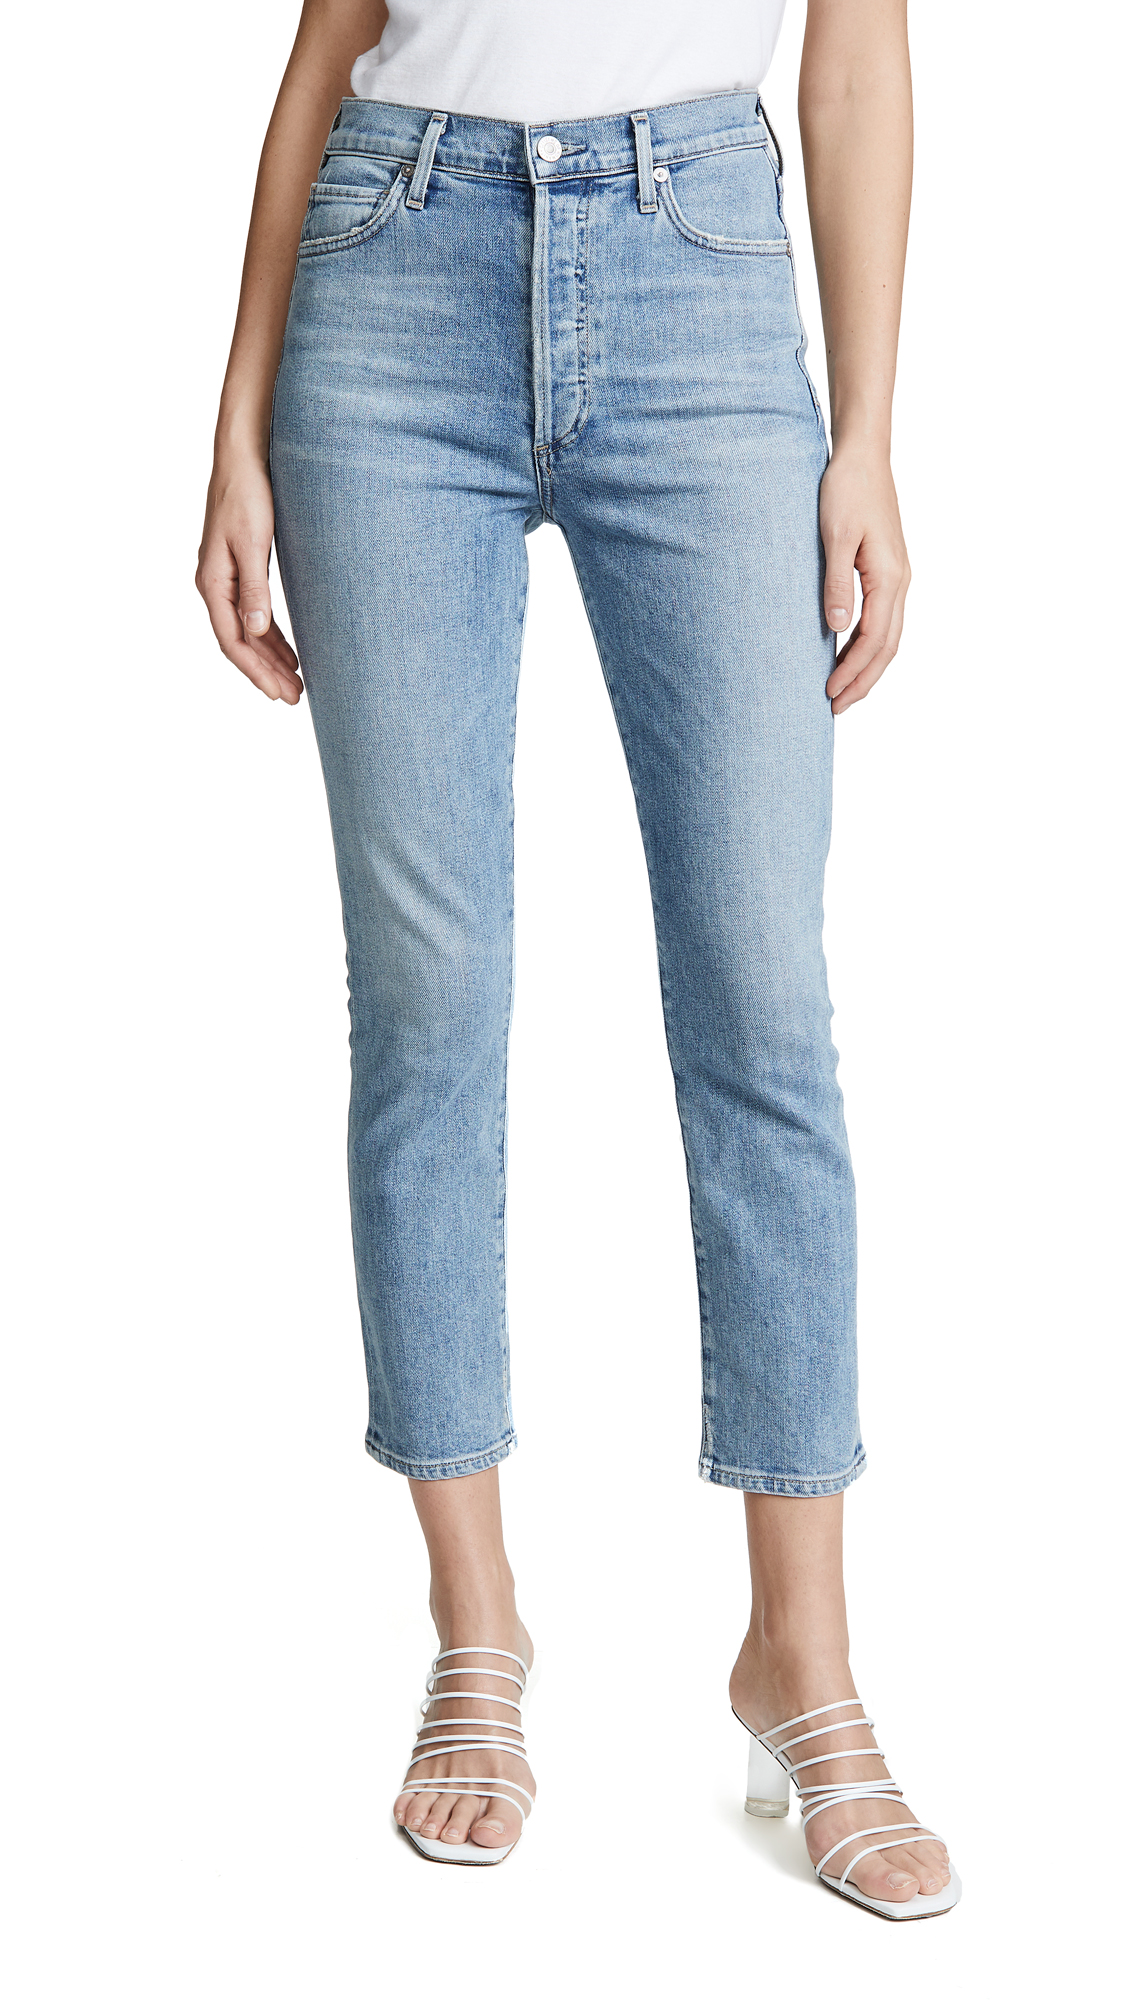 Citizens of Humanity Olivia Seam High Rise Slim Cropped Jeans - Outset